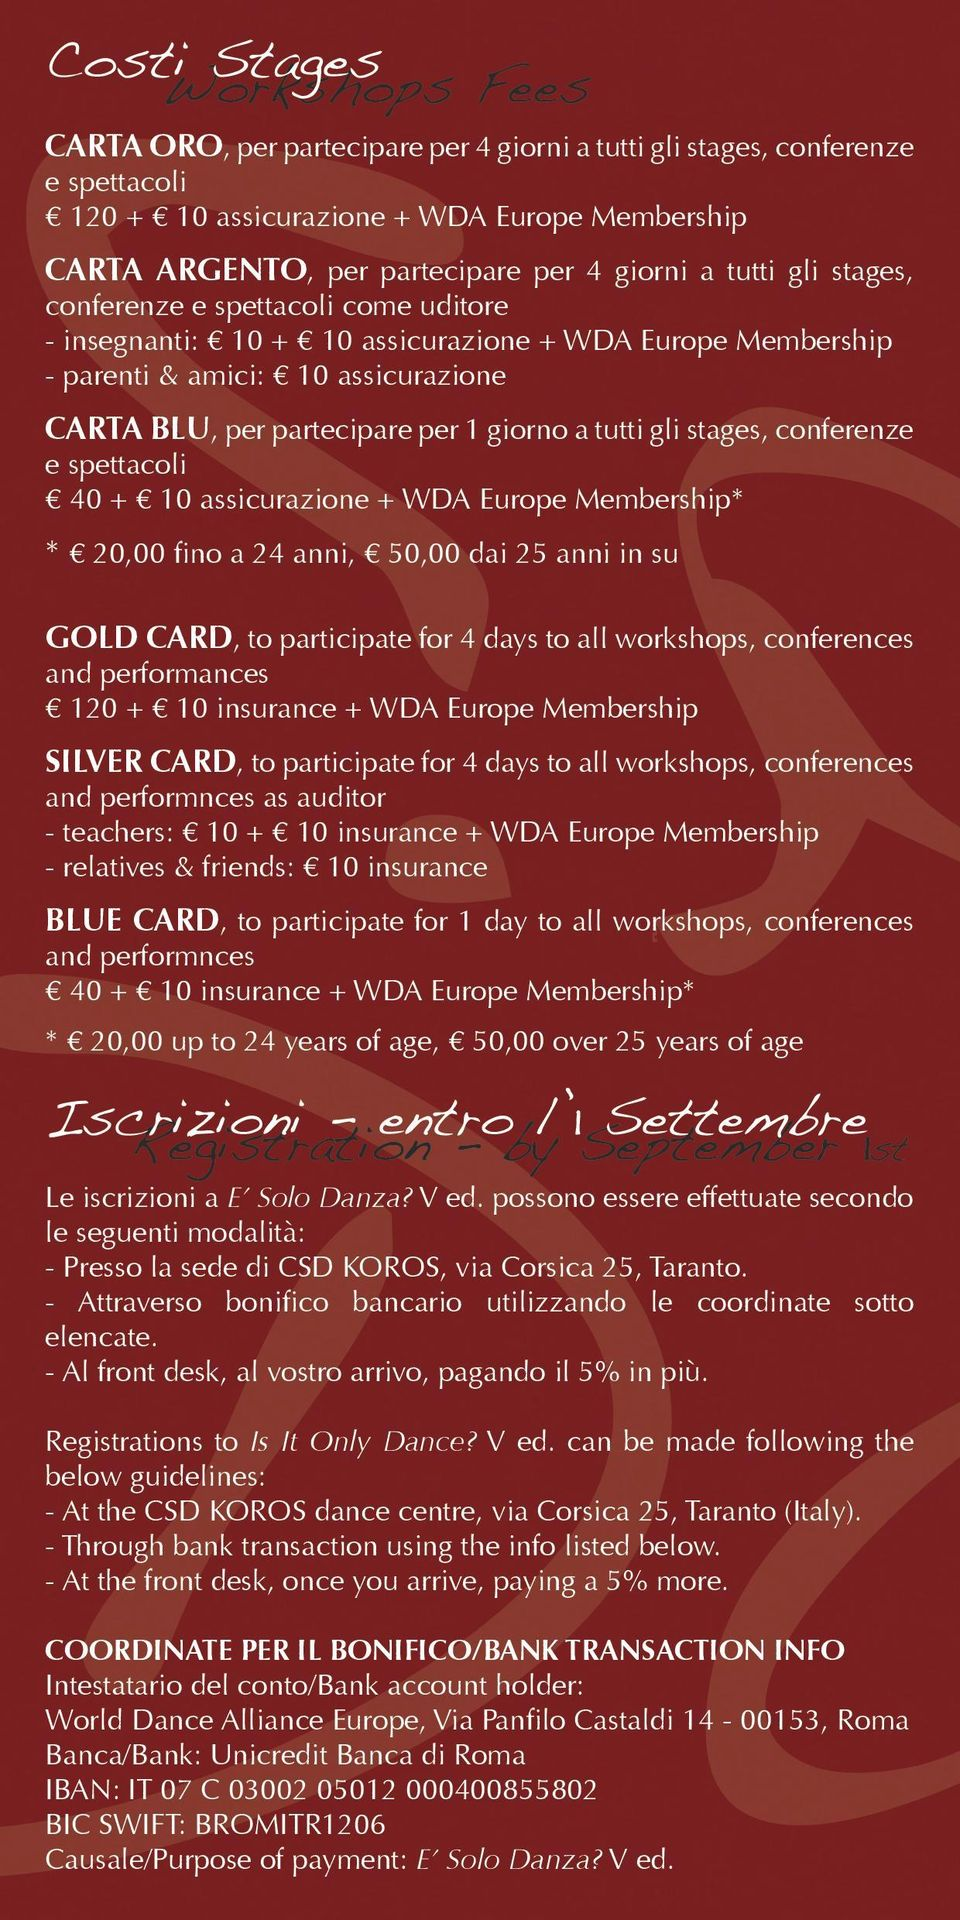 a tutti gli stages, conferenze e spettacoli 40 + 10 assicurazione + WDA Europe Membership* * 20,00 fino a 24 anni, 50,00 dai 25 anni in su GOLD CARD, to participate for 4 days to all workshops,